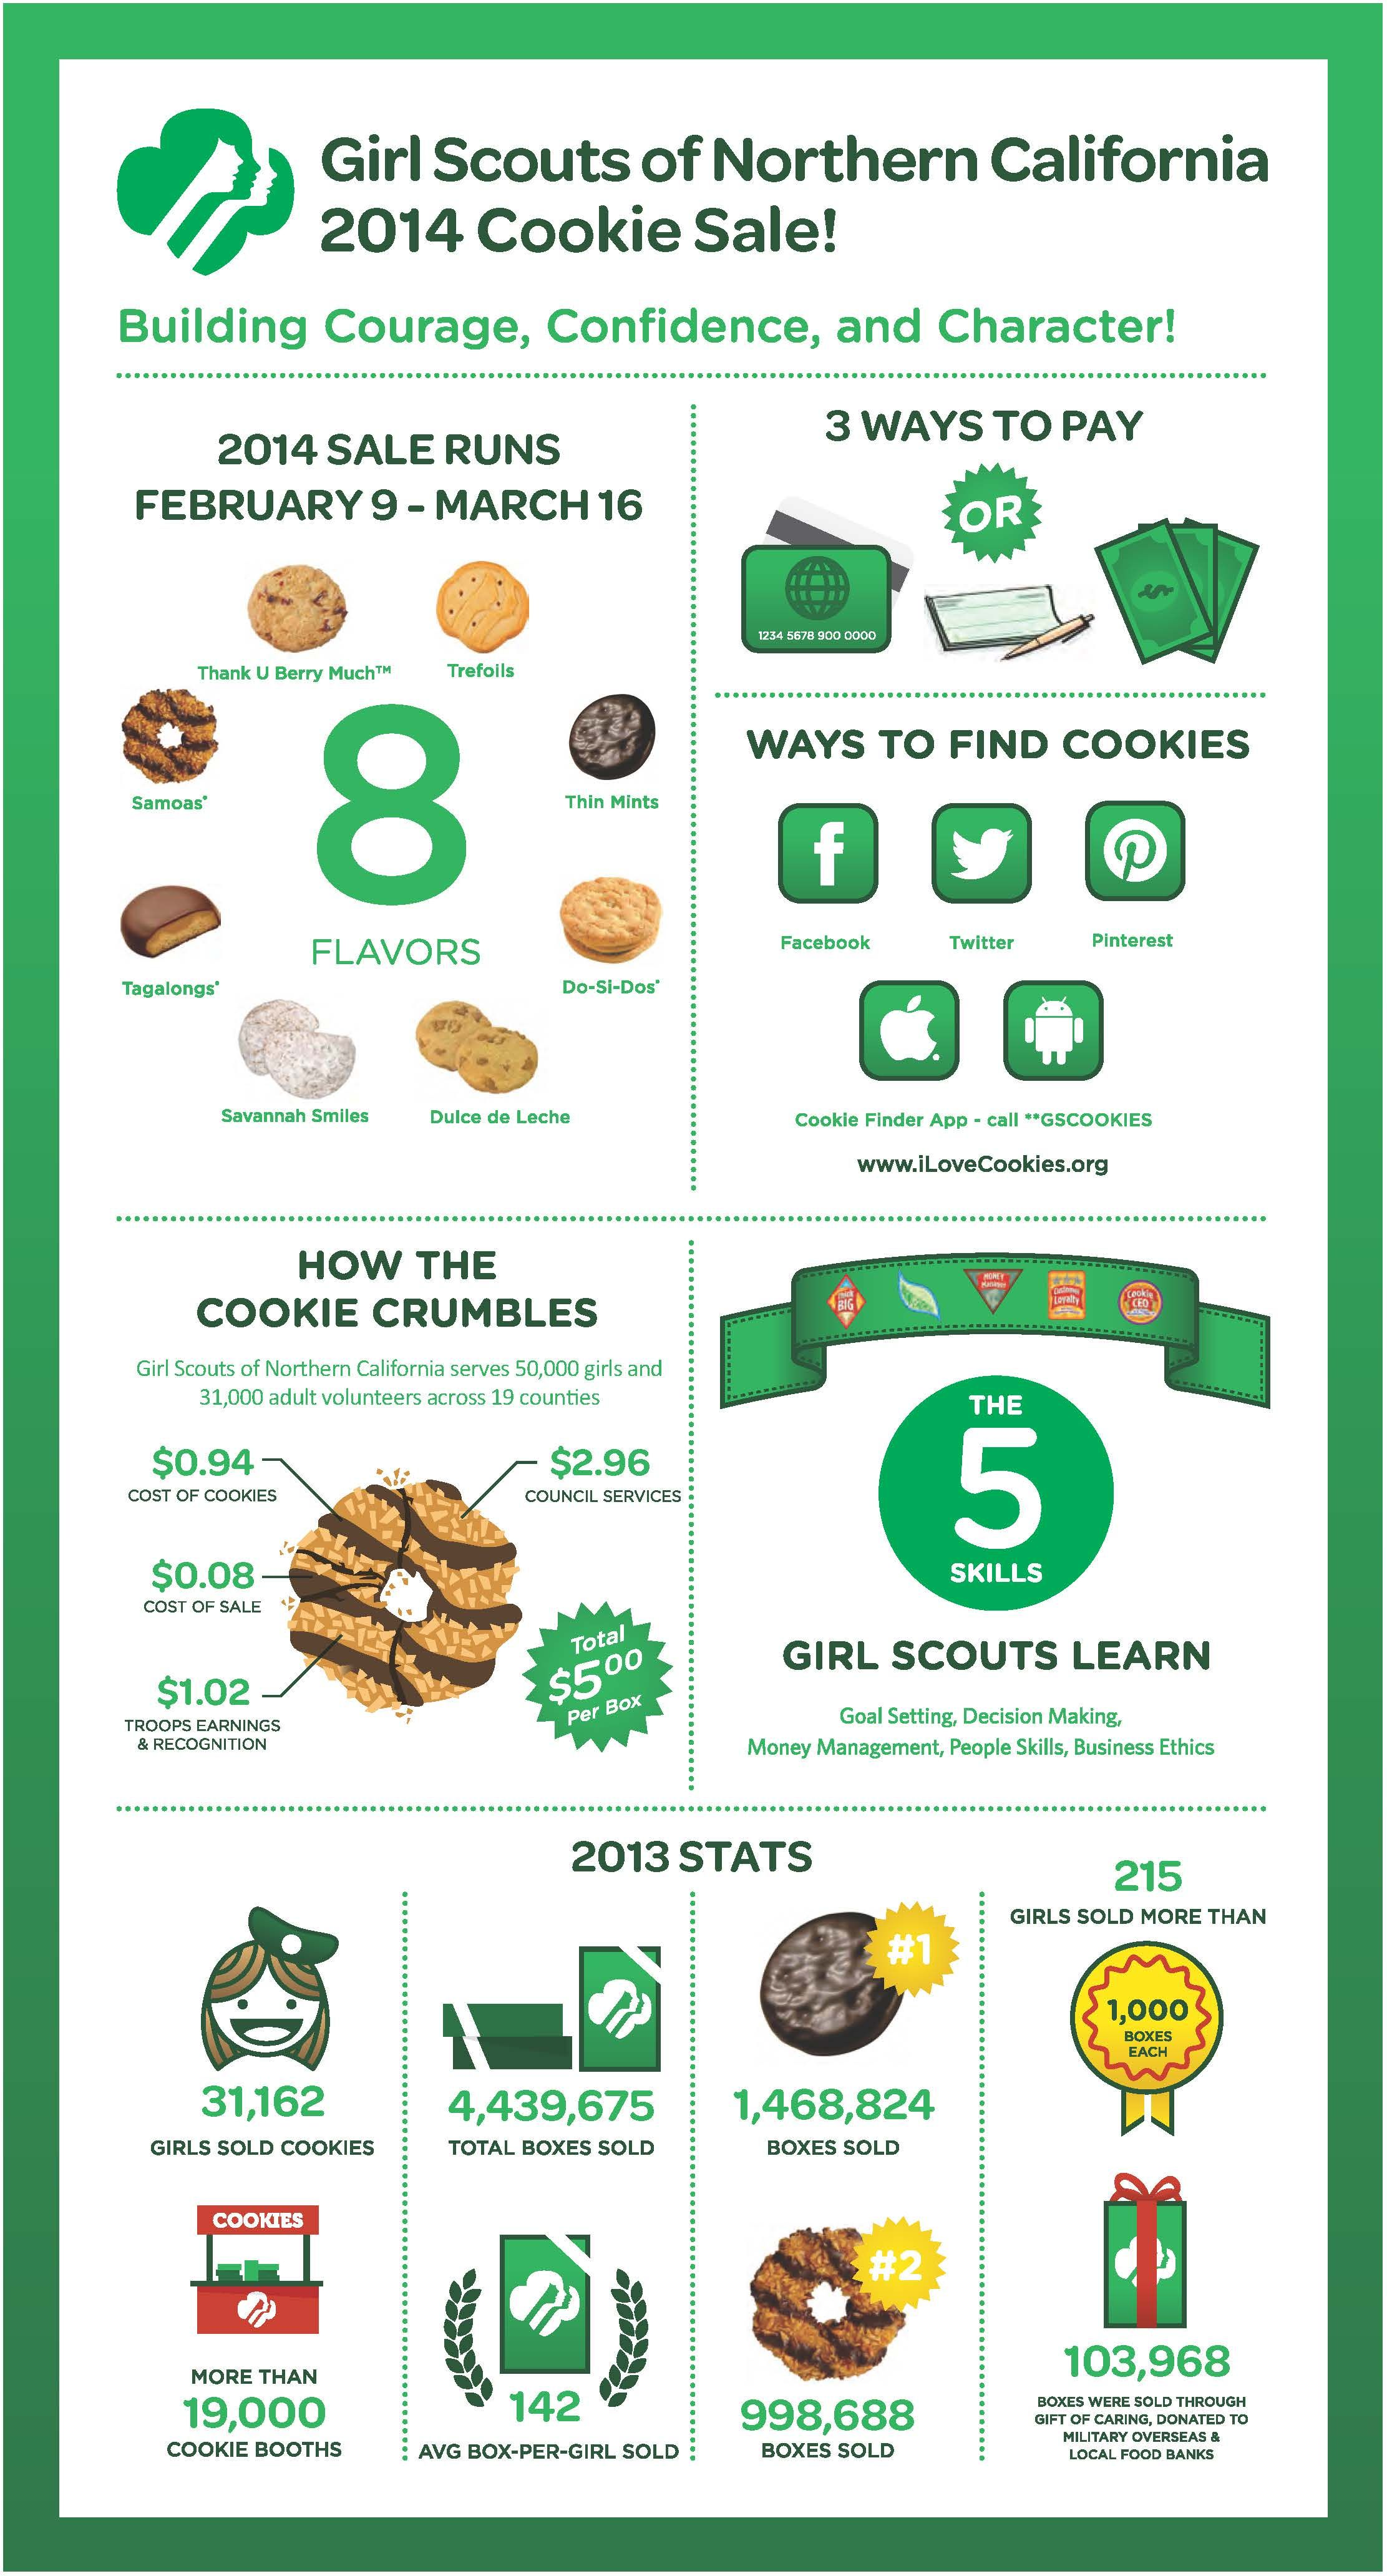 Pin By Marylar Catlin On Girl Scout Leader Stuff